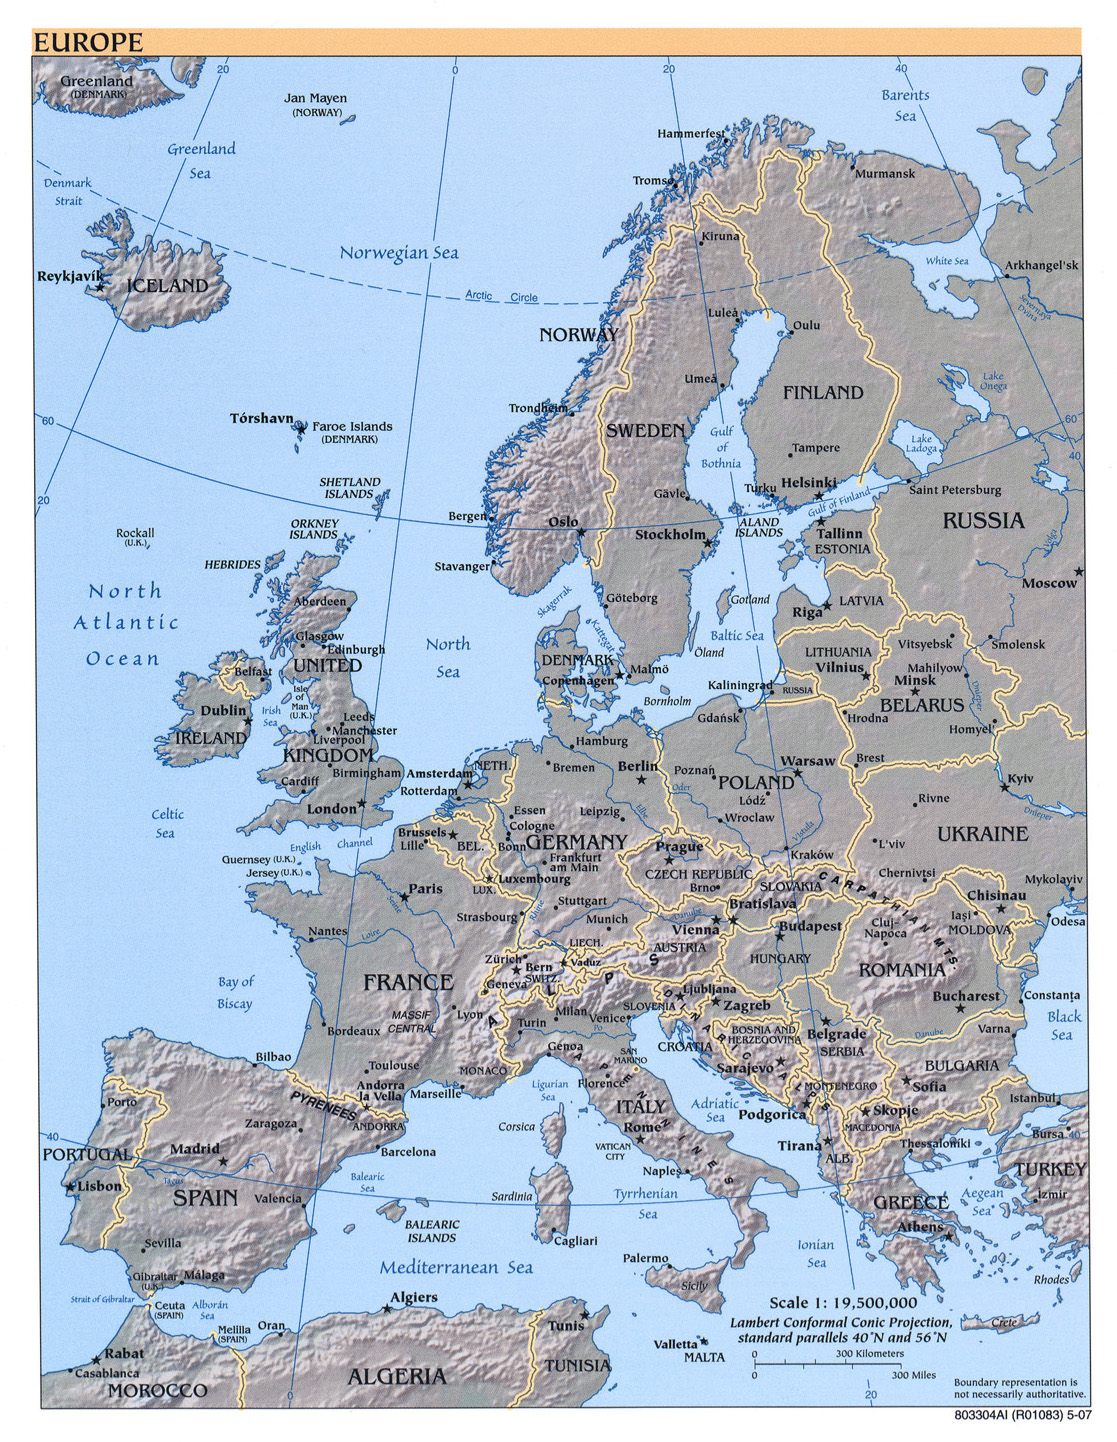 europe atlas 2008 pf spir